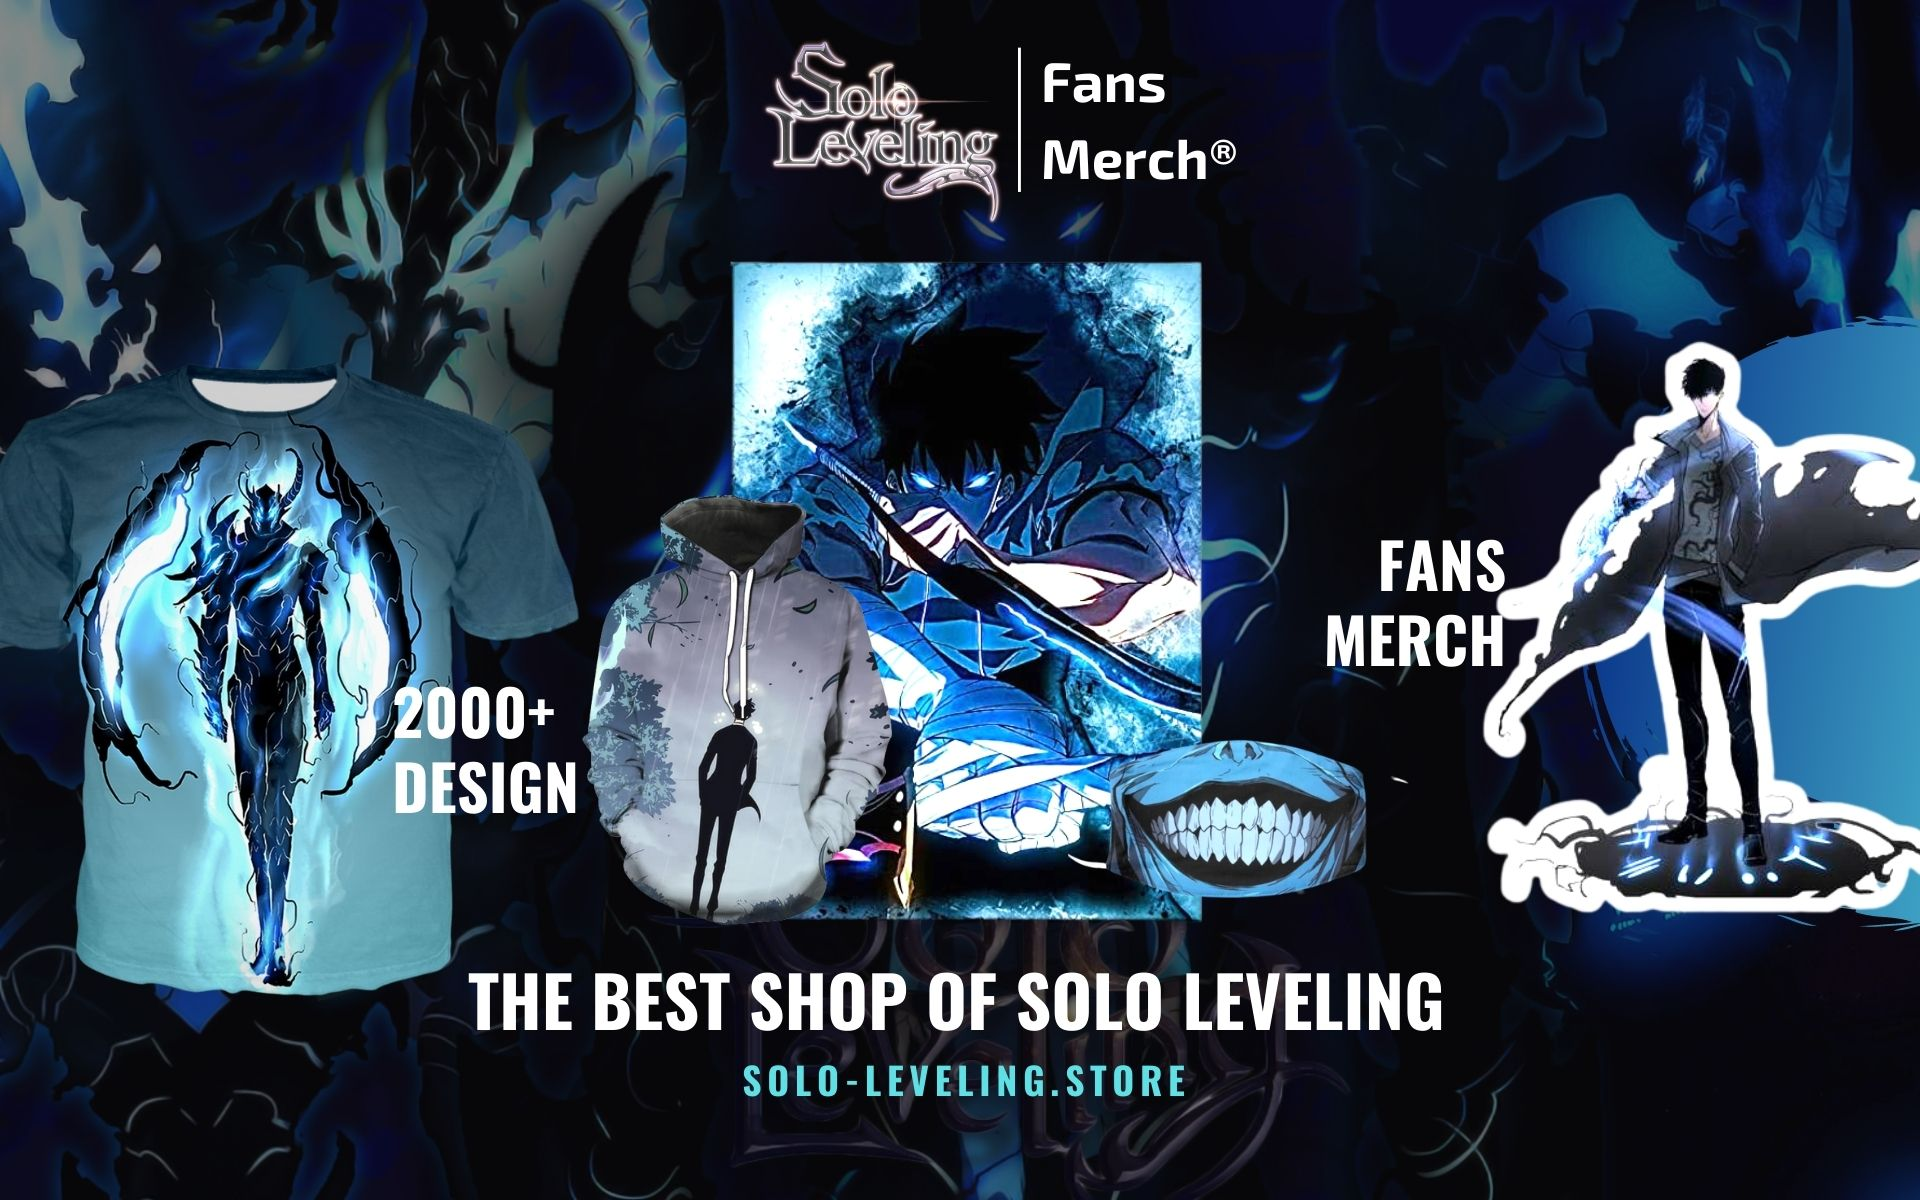 Solo Leveling Merch Web Banner - Solo Leveling Merch Store